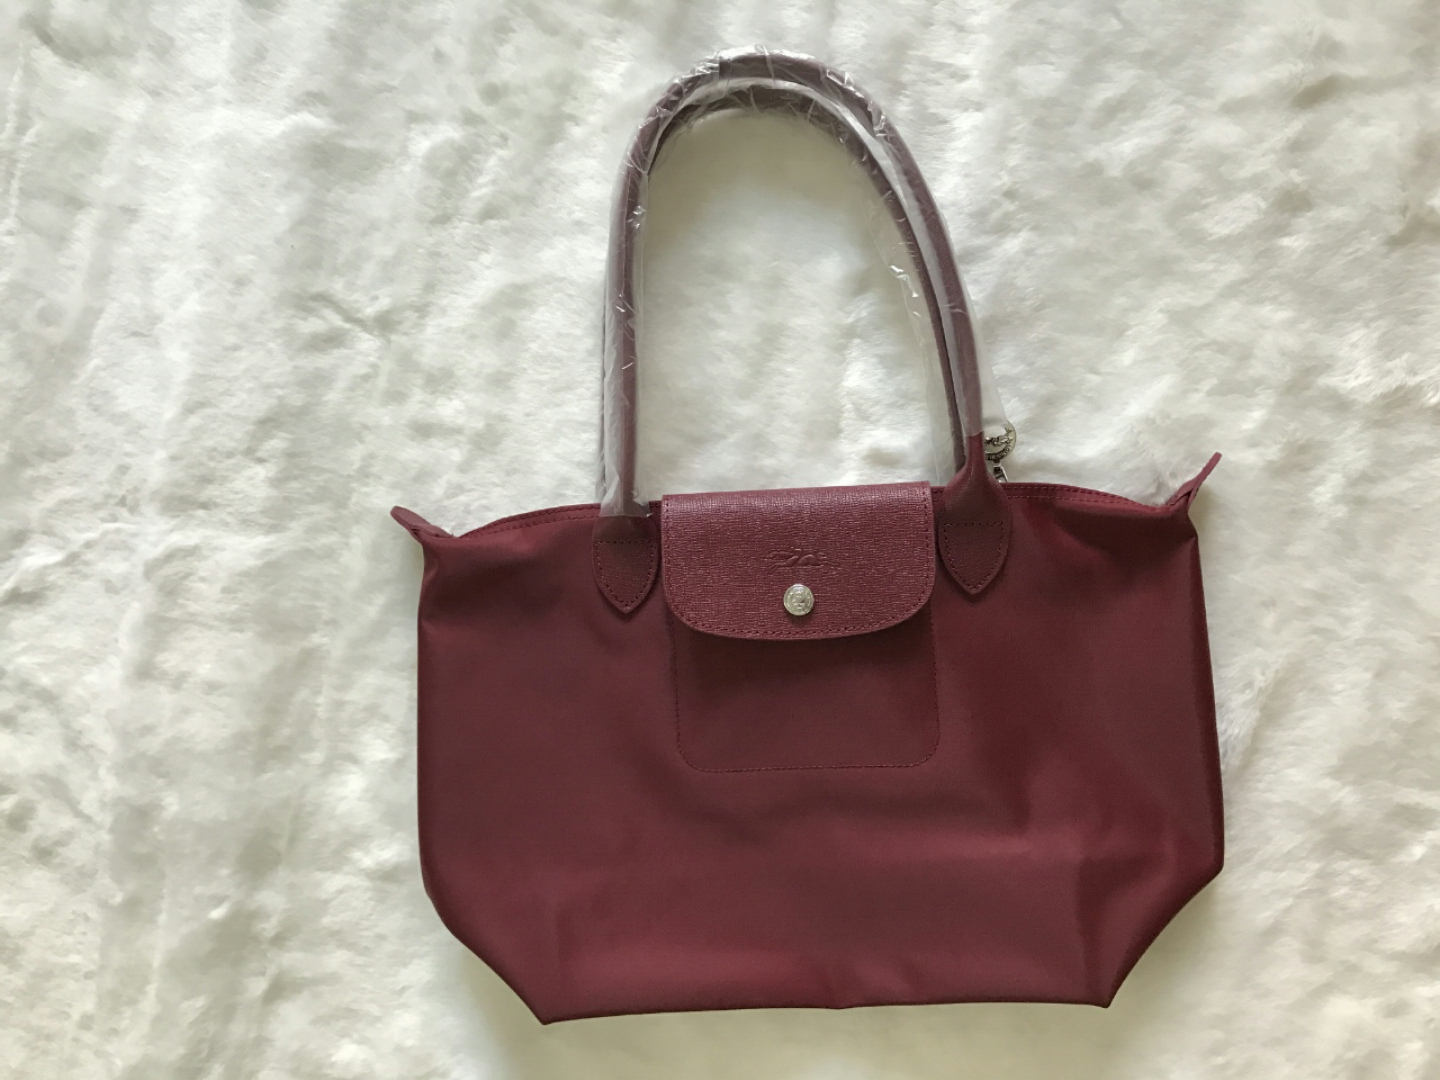 Longchamp Le Pliage Neo Small Tote Bag Wine and 27 similar items.  1549895384514 21e95572bc425